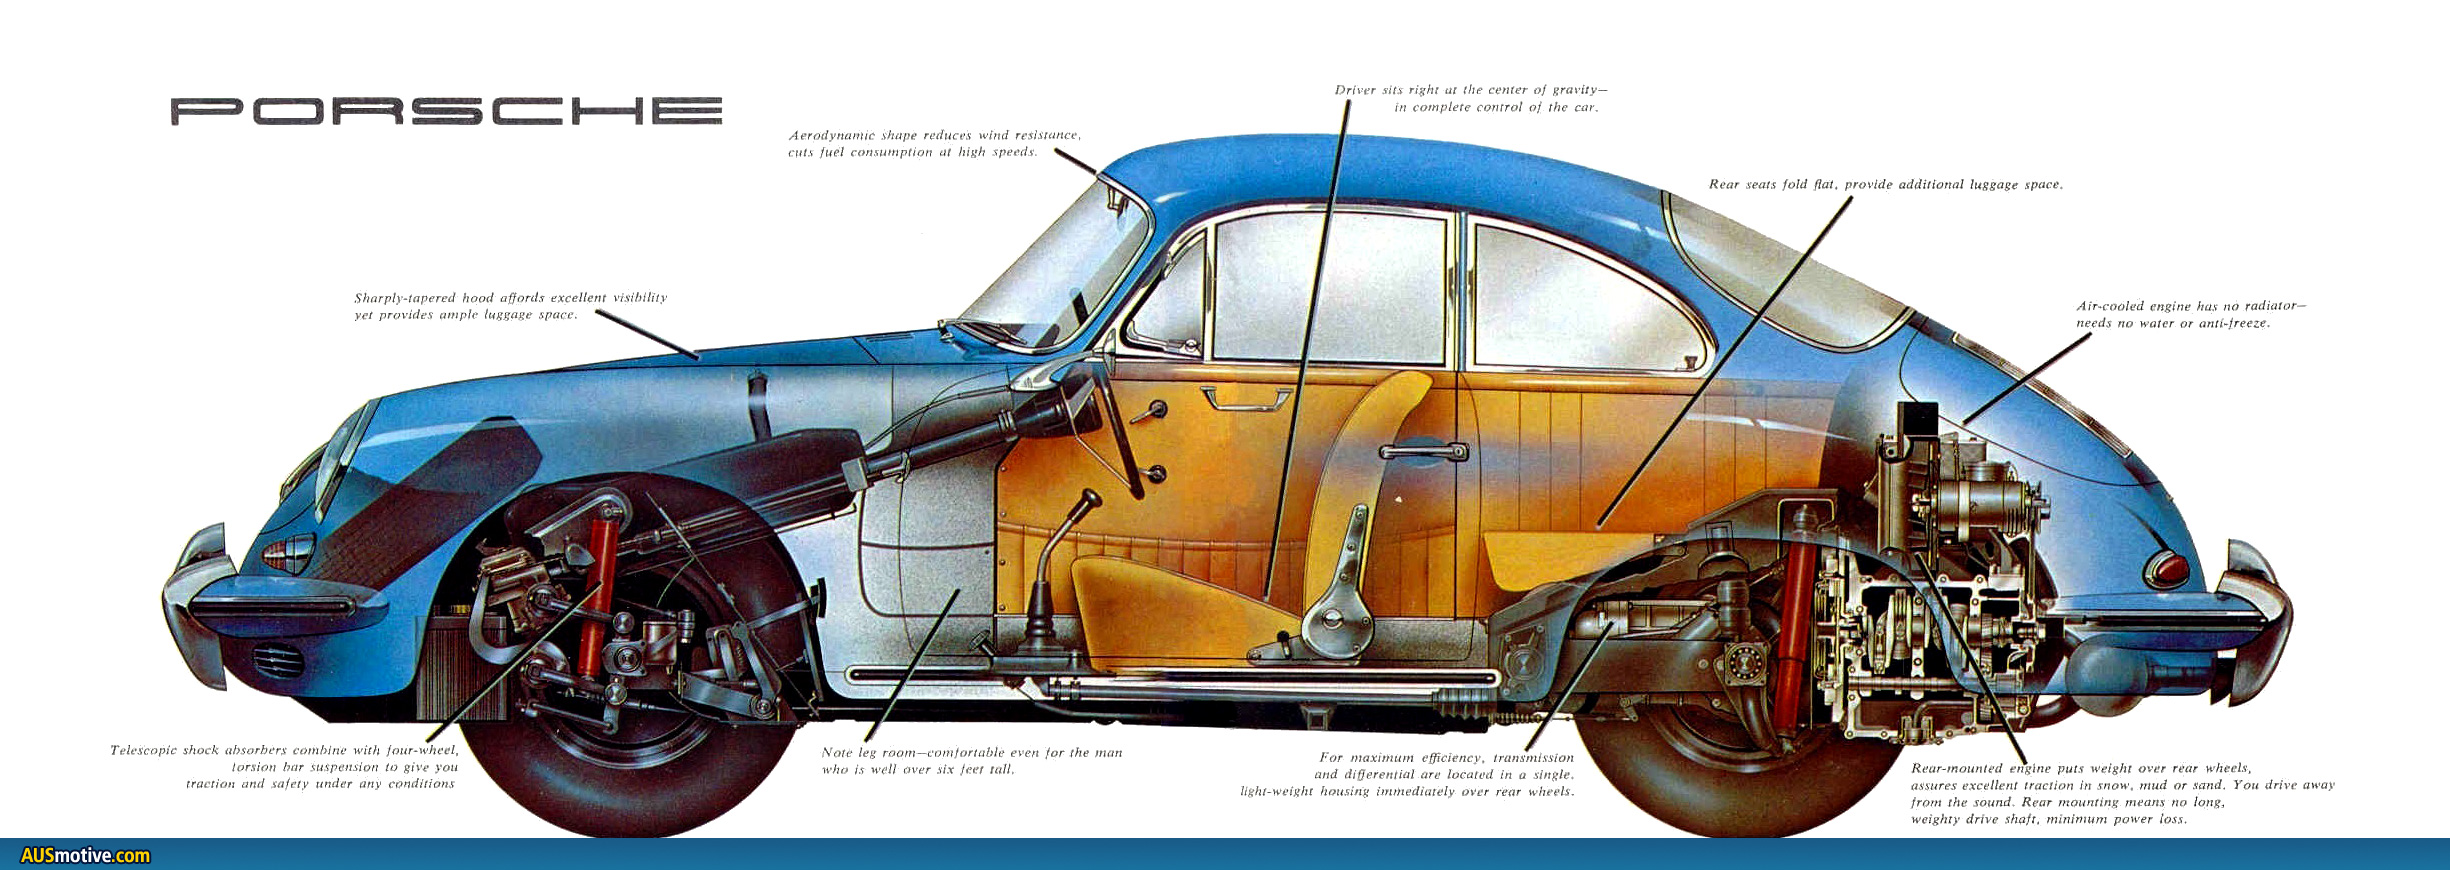 17 best images about trabajo porsche cars vintage 17 best images about trabajo porsche cars vintage and coupe